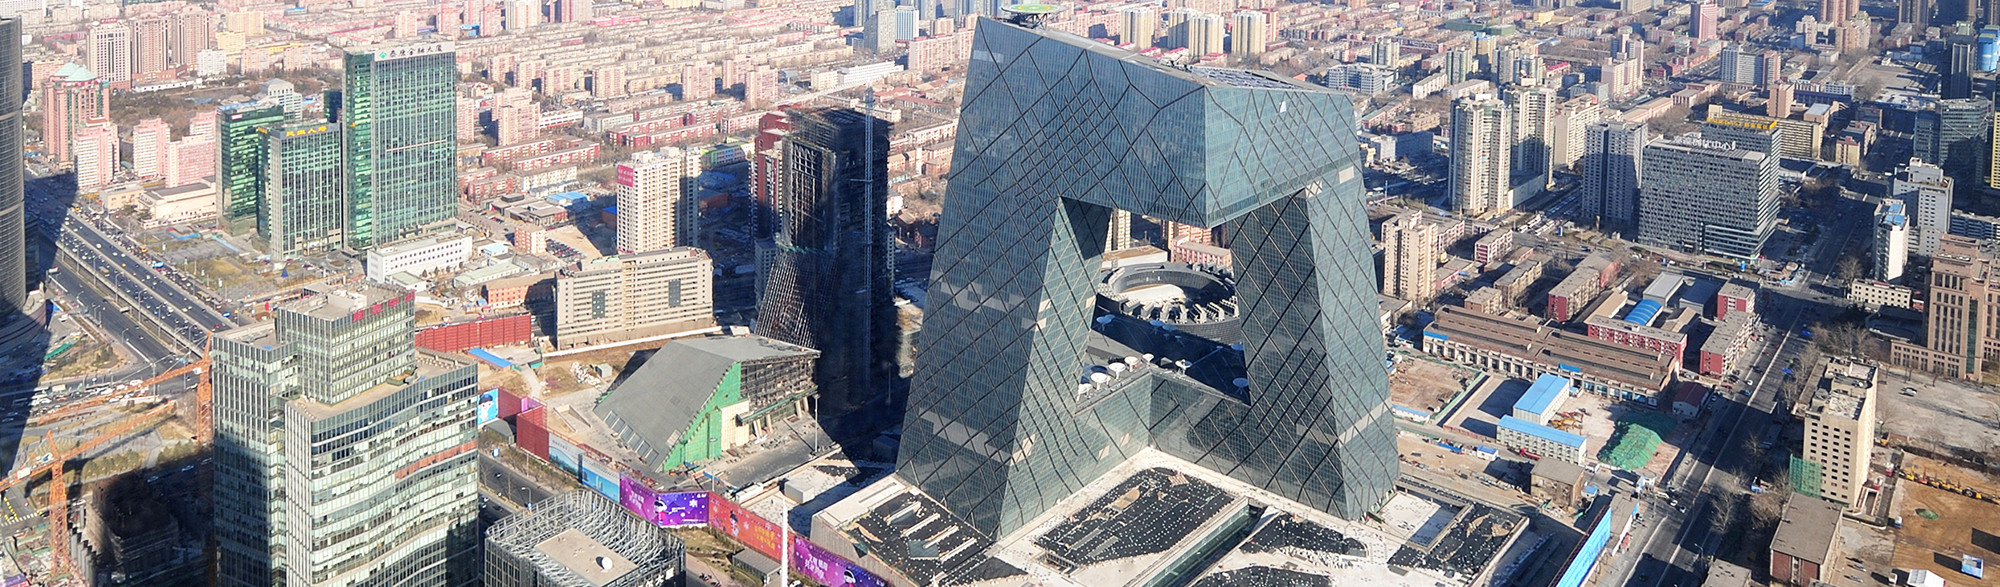 Beijing CCTV Tower